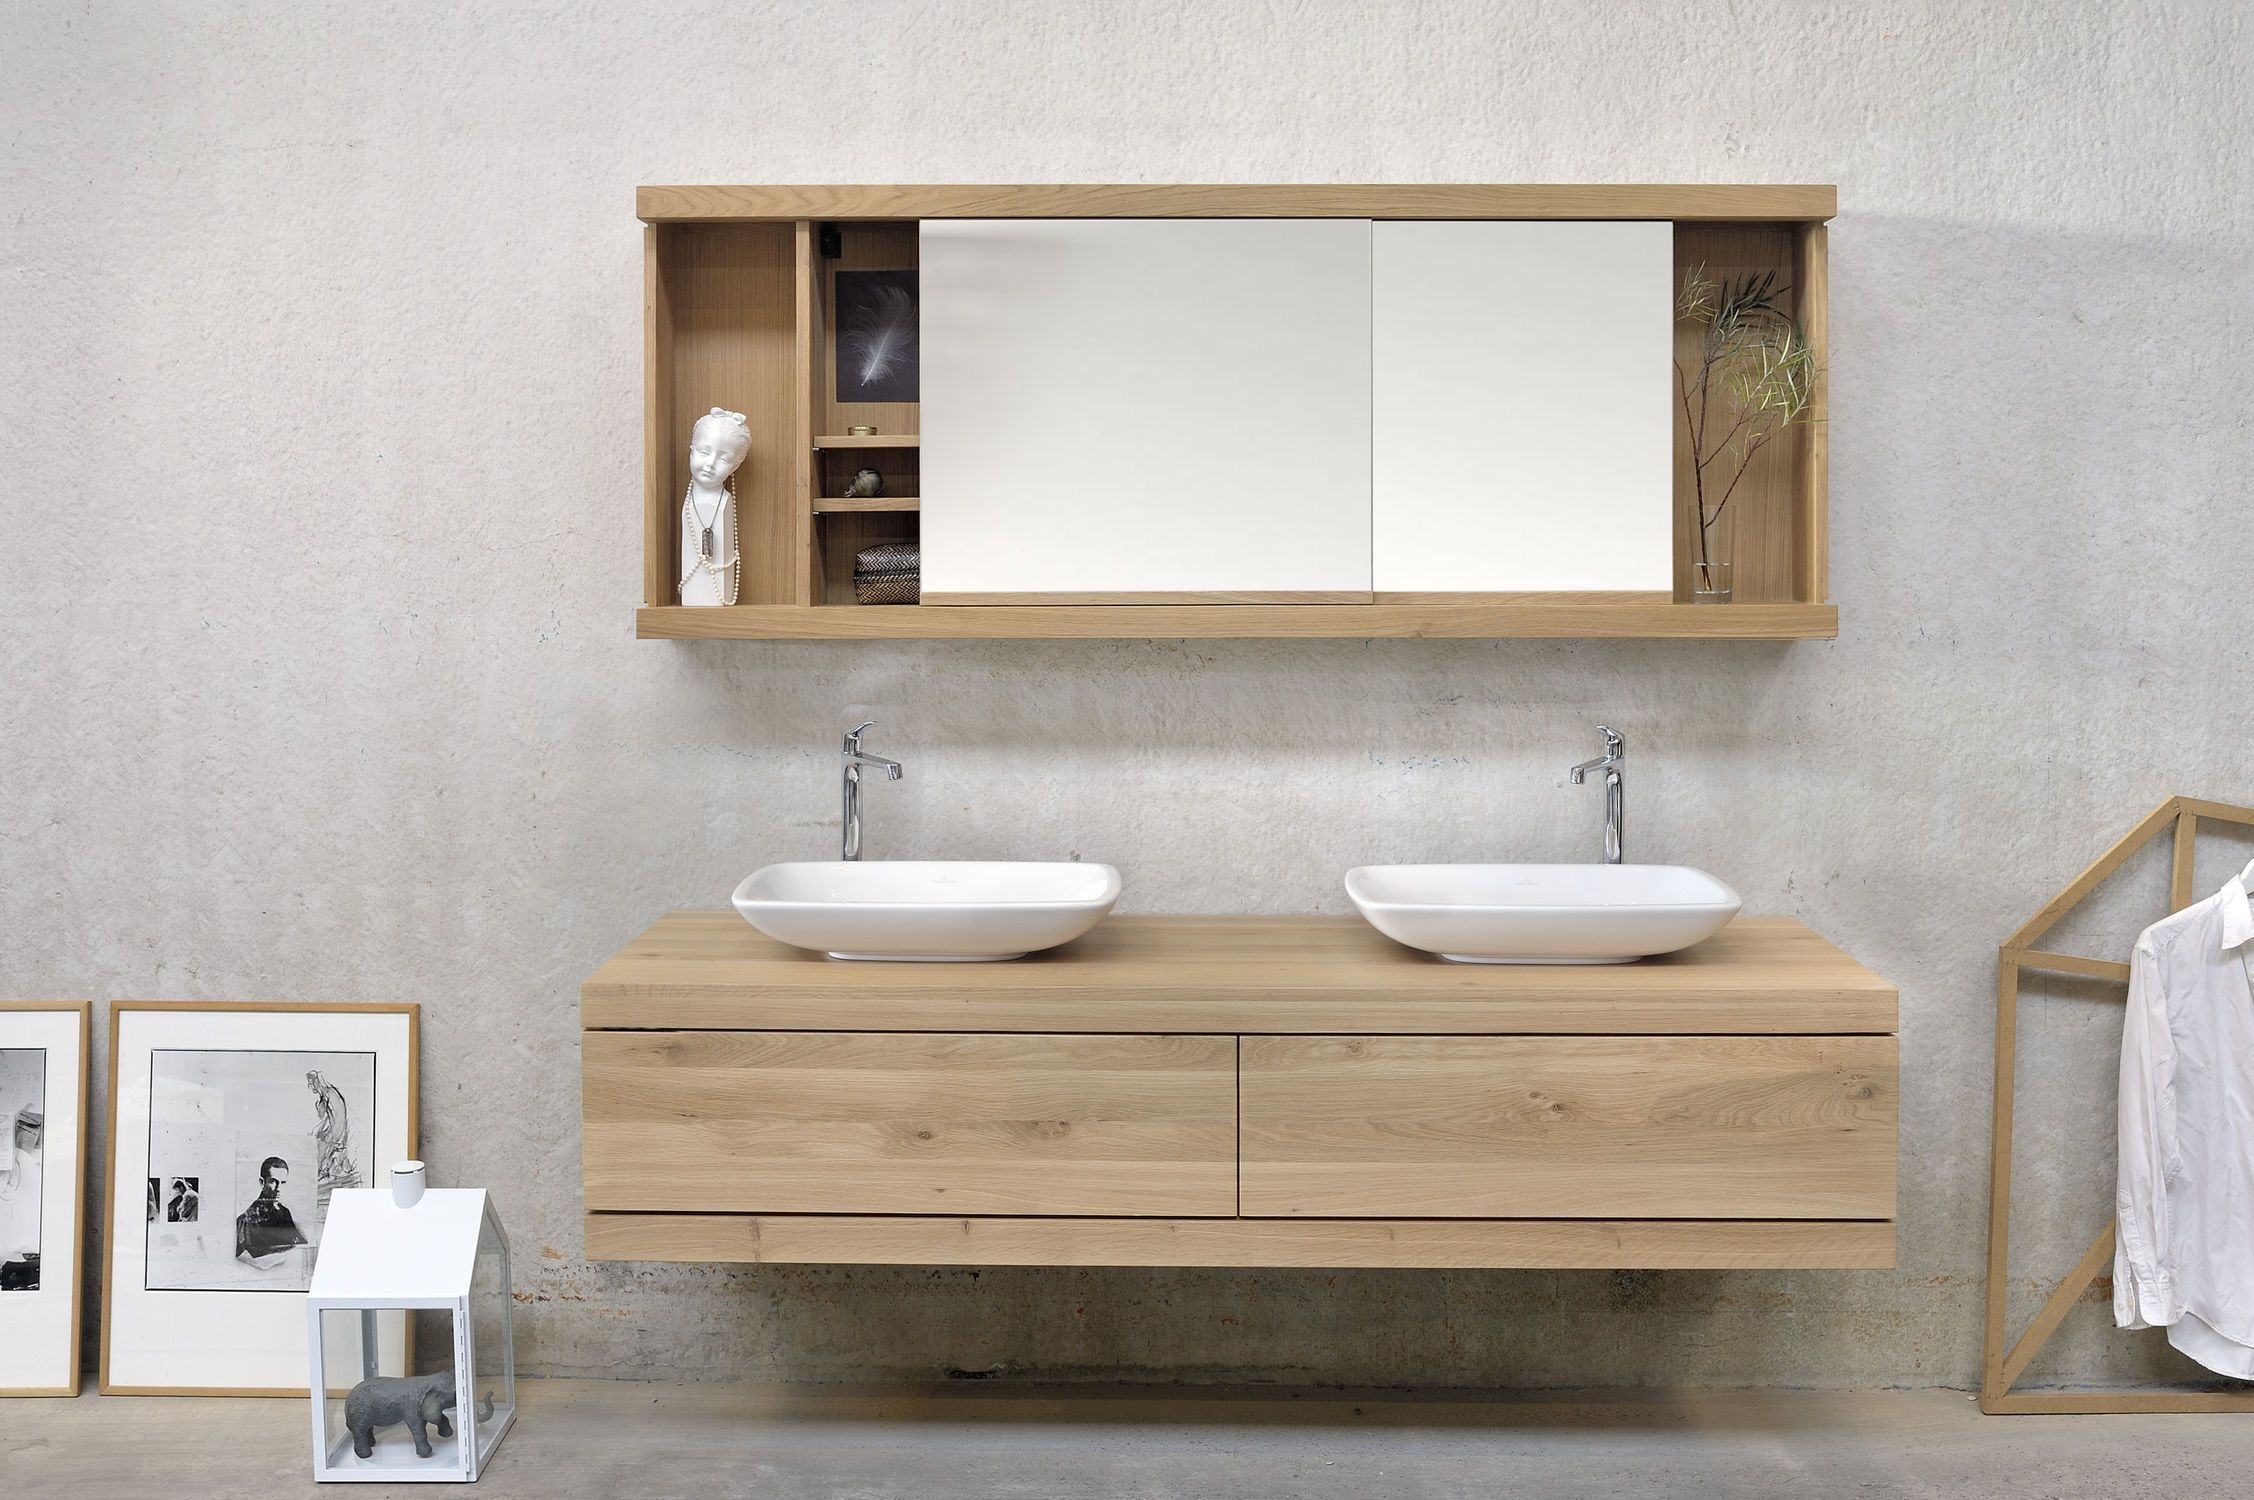 Double Washbasin Cabinet Wall Mounted Contemporary Oak Cadence Tgo 058027 Studio Ethni Wood Bathroom Vanity Wooden Bathroom Vanity Wooden Bathroom